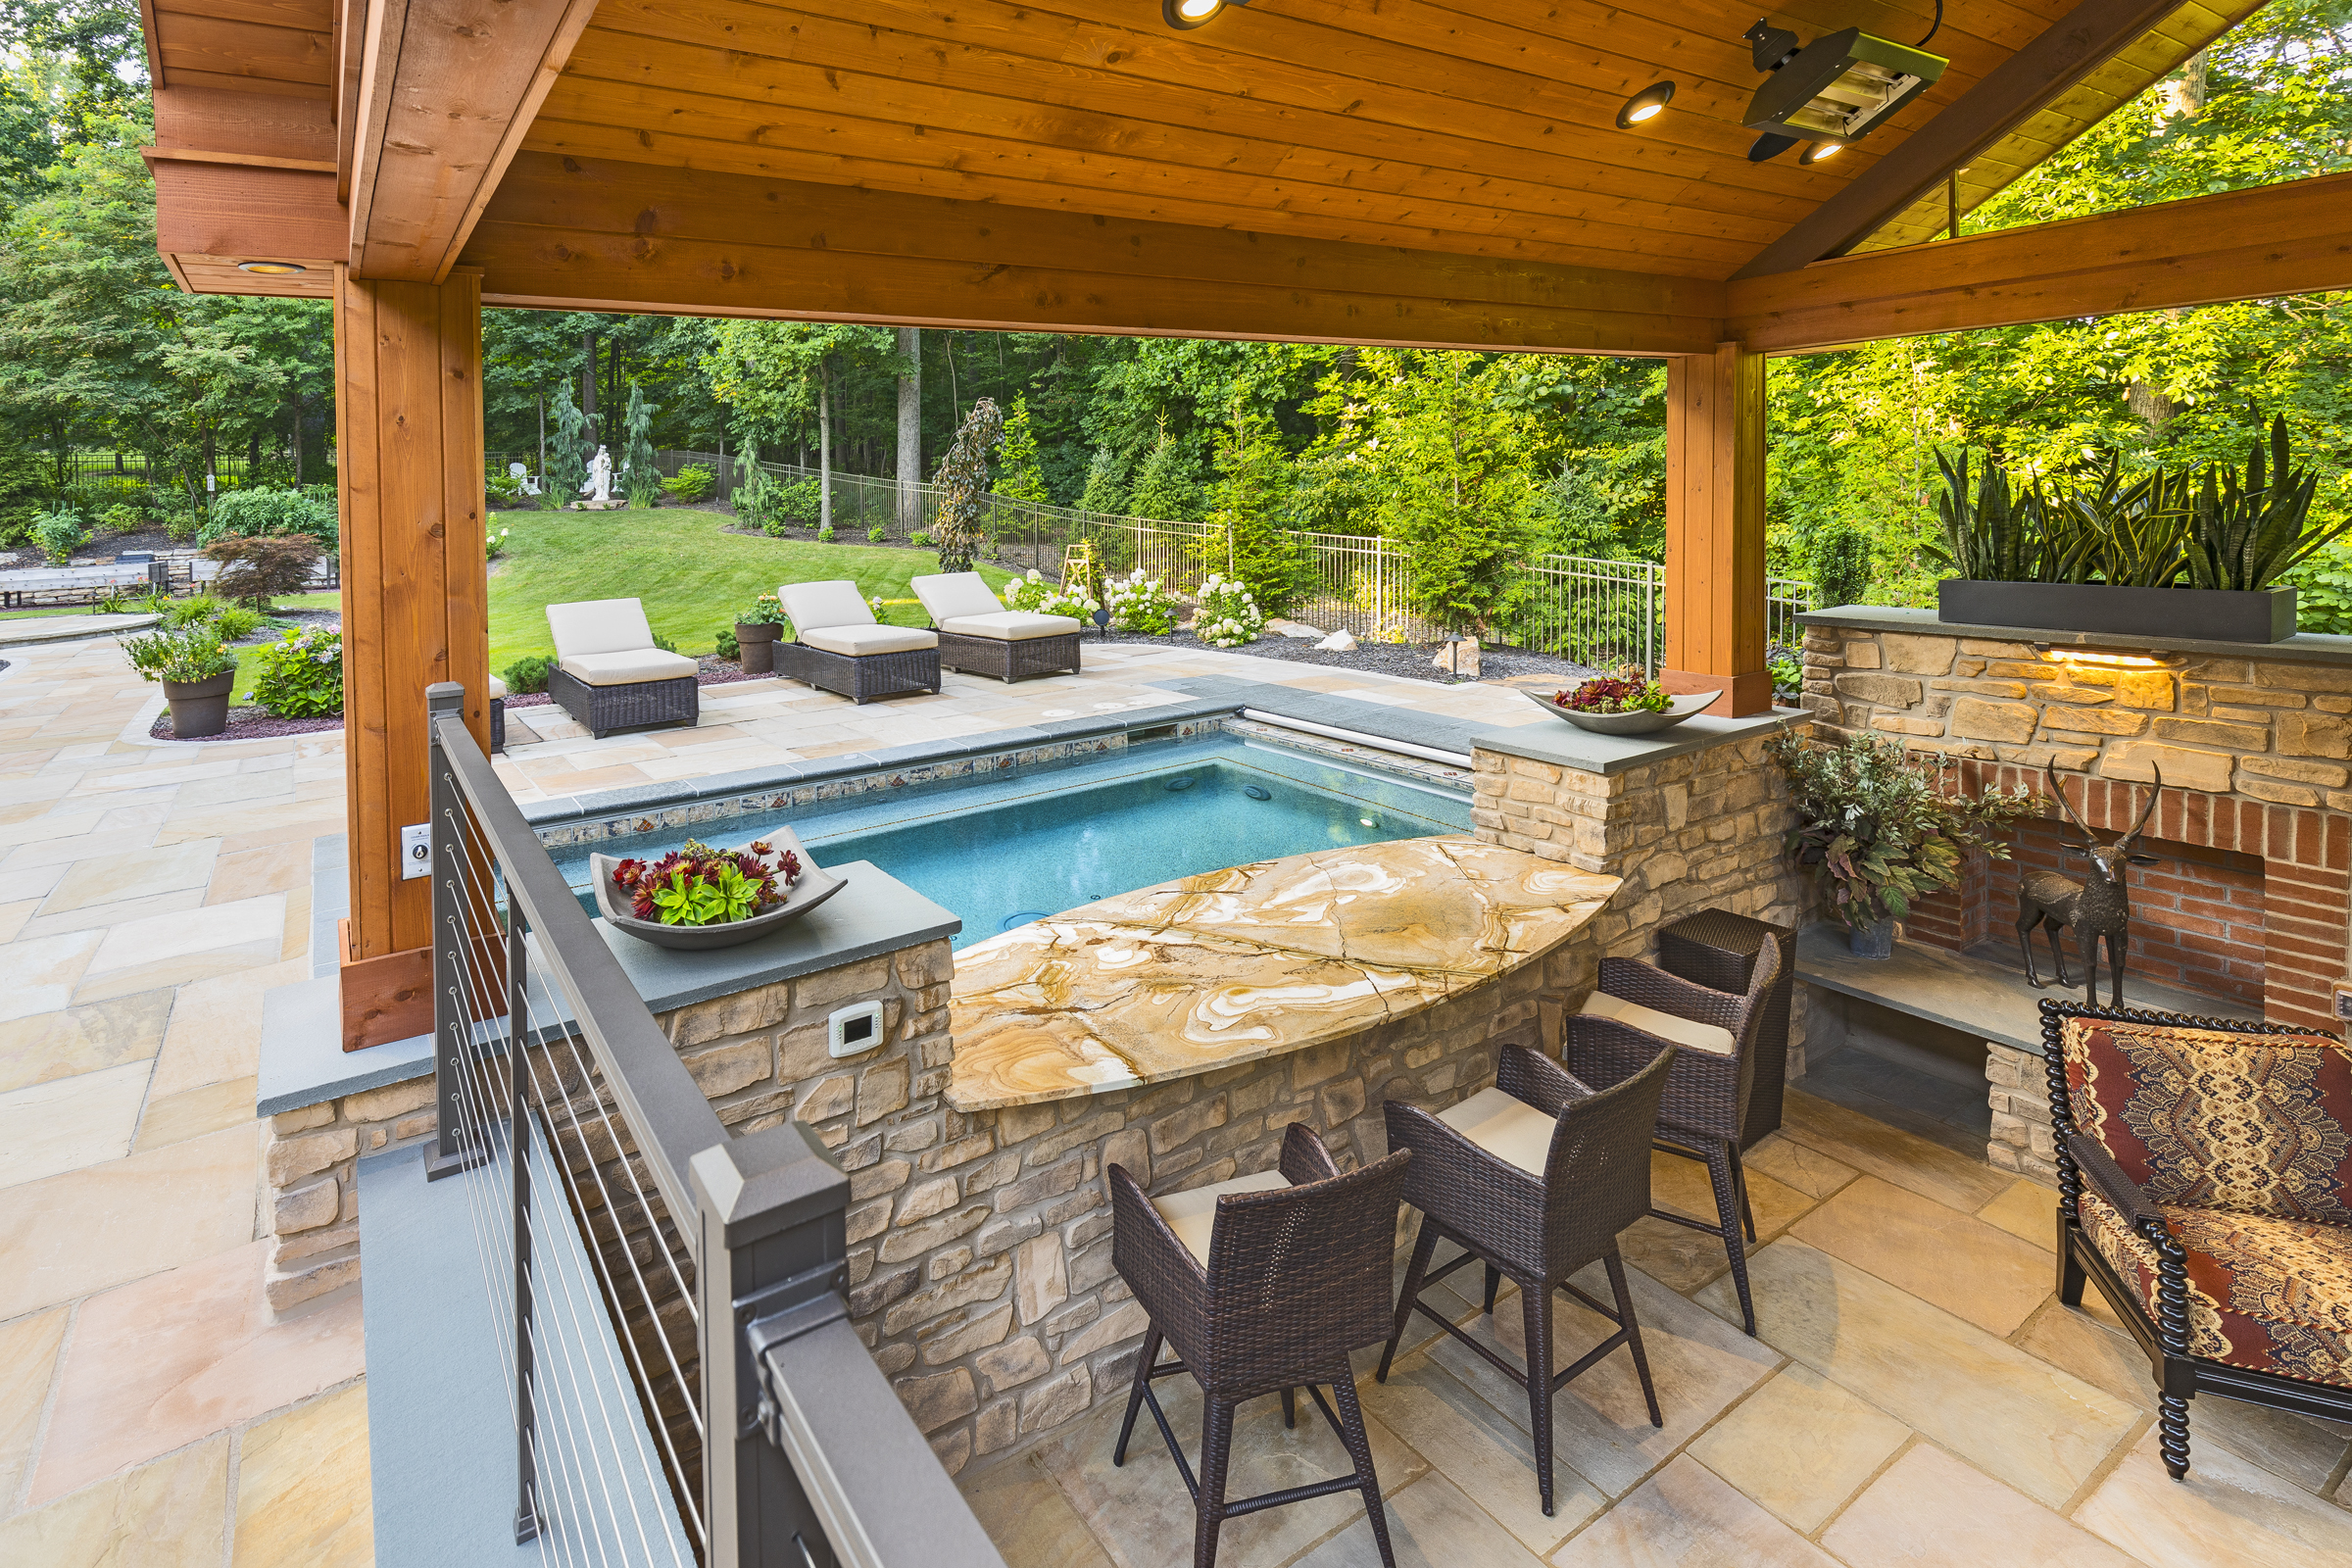 Custom Gunite Spa with Outdoor Living Area in Central PA on Outdoor Living Spa id=52317